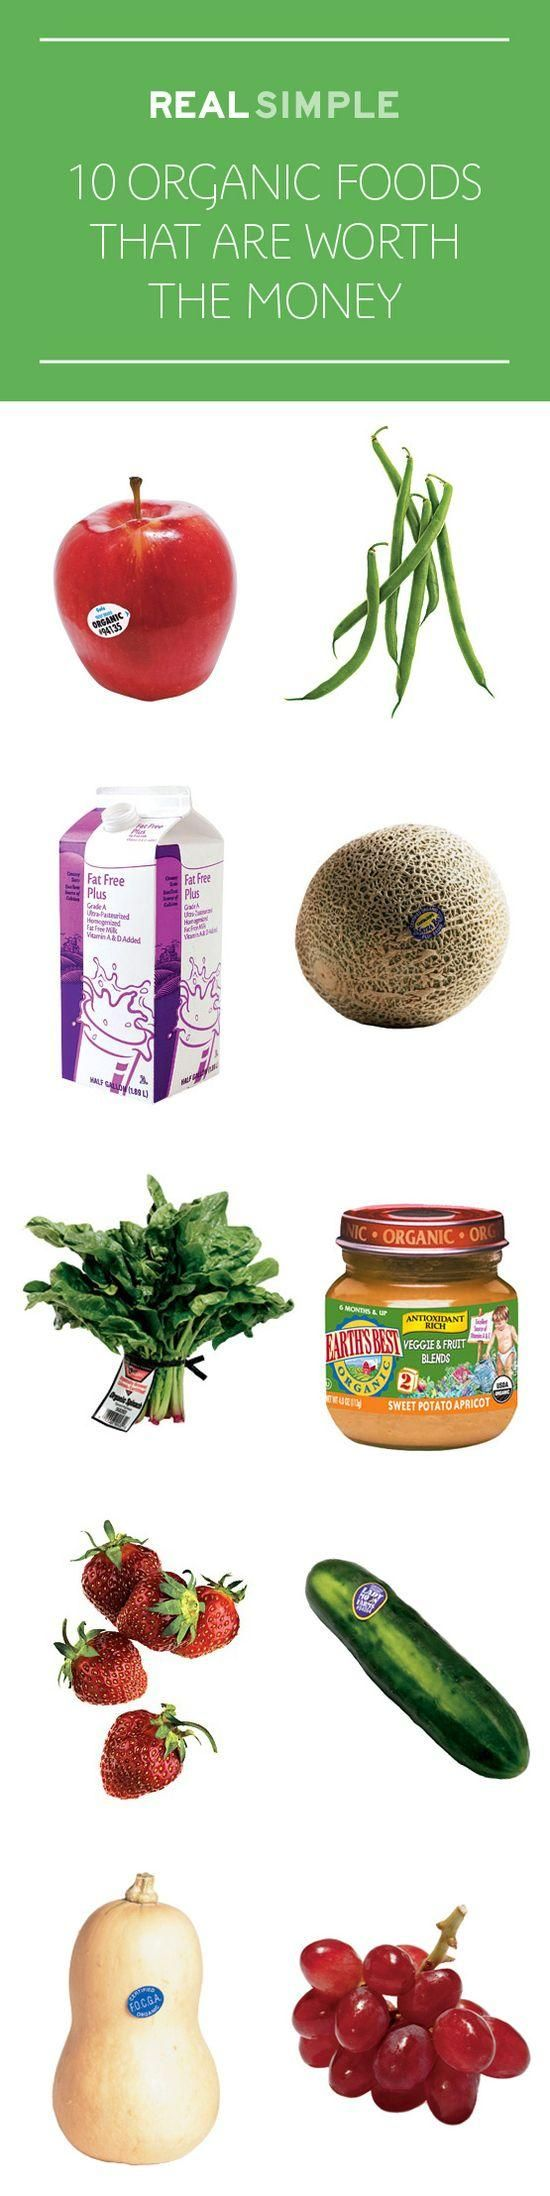 Can't afford organic all the time? Here's where to splurge, and how to eat cleaner if you don't have the option.